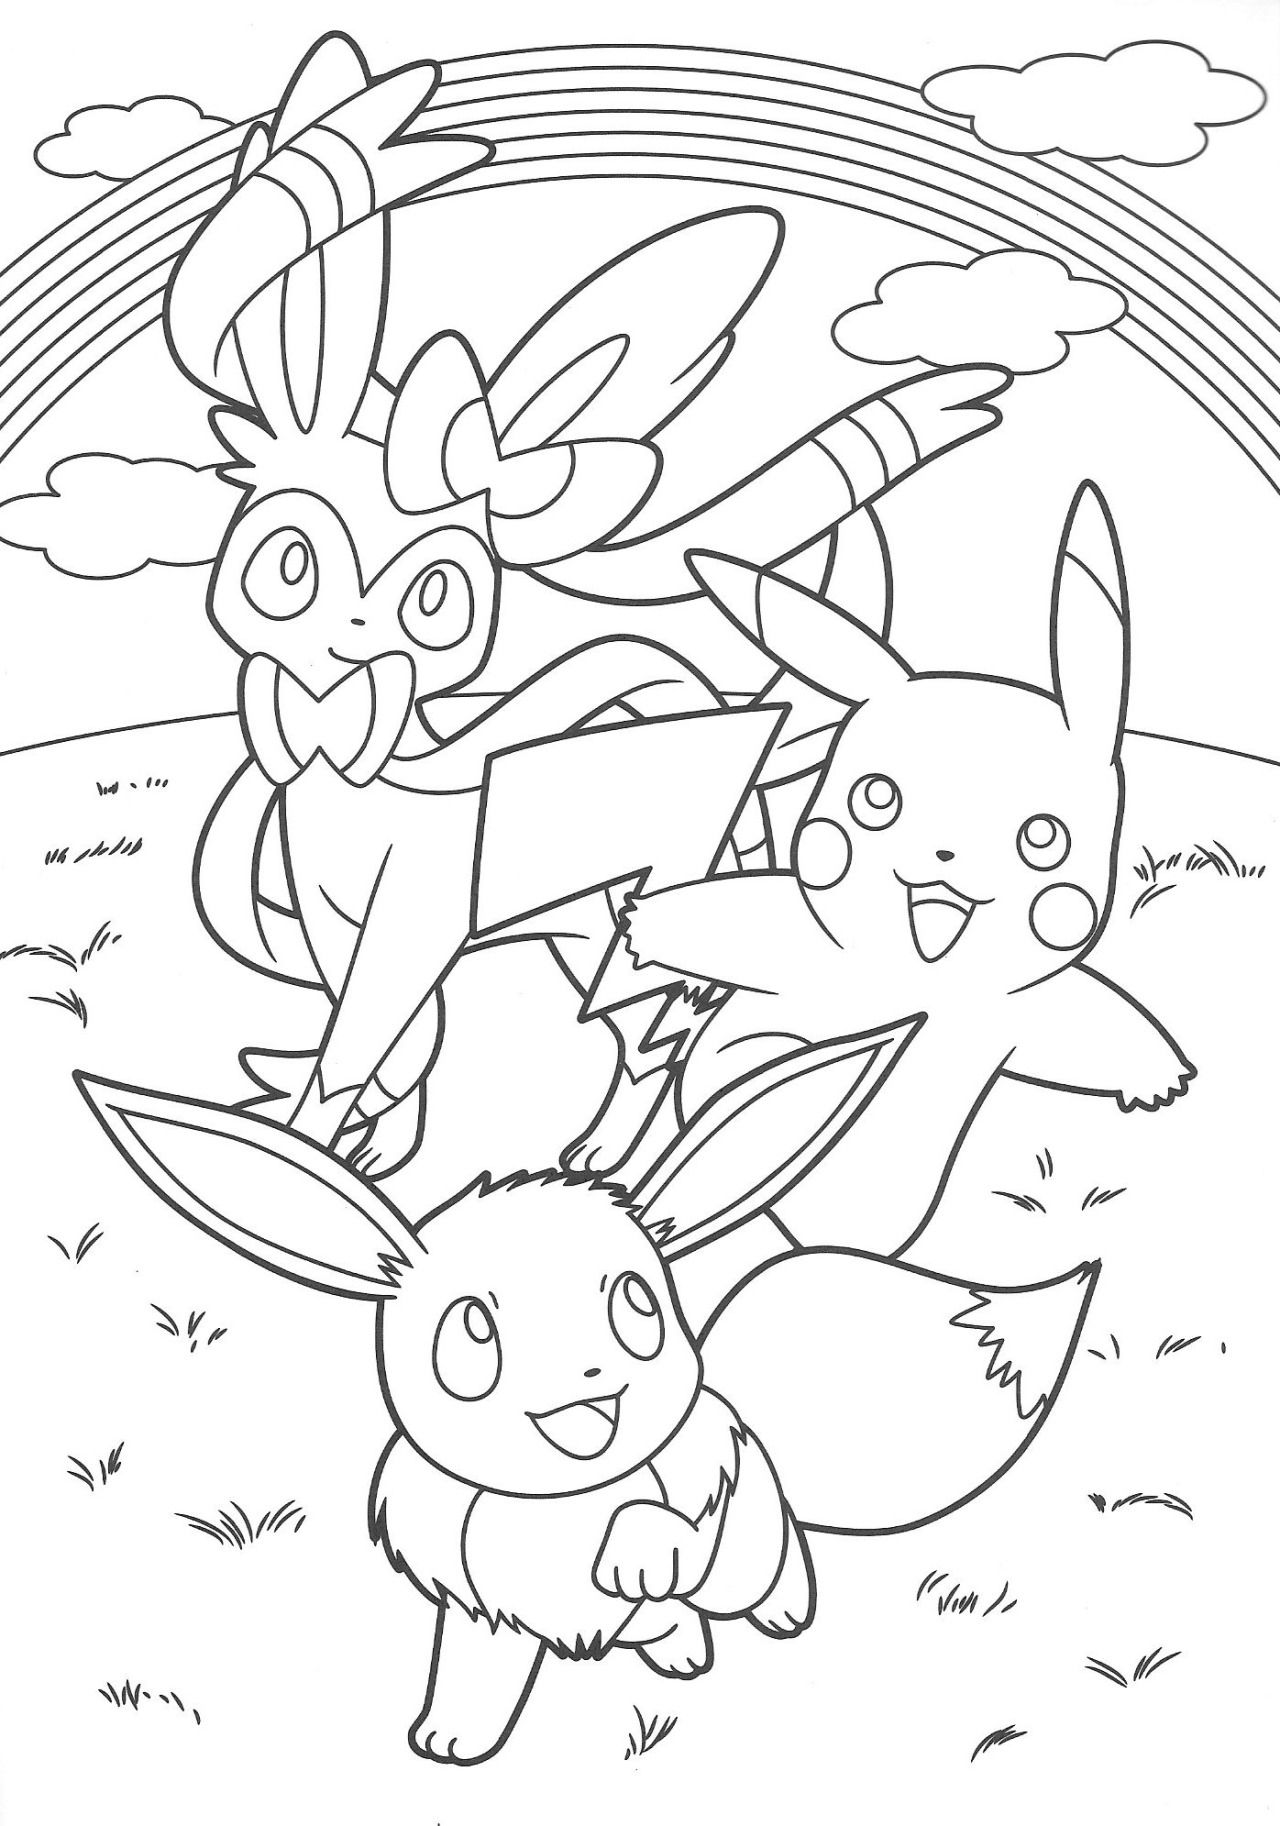 Eevee and pikachu coloring pages - Pikachu And Eevee Friends Coloring Book